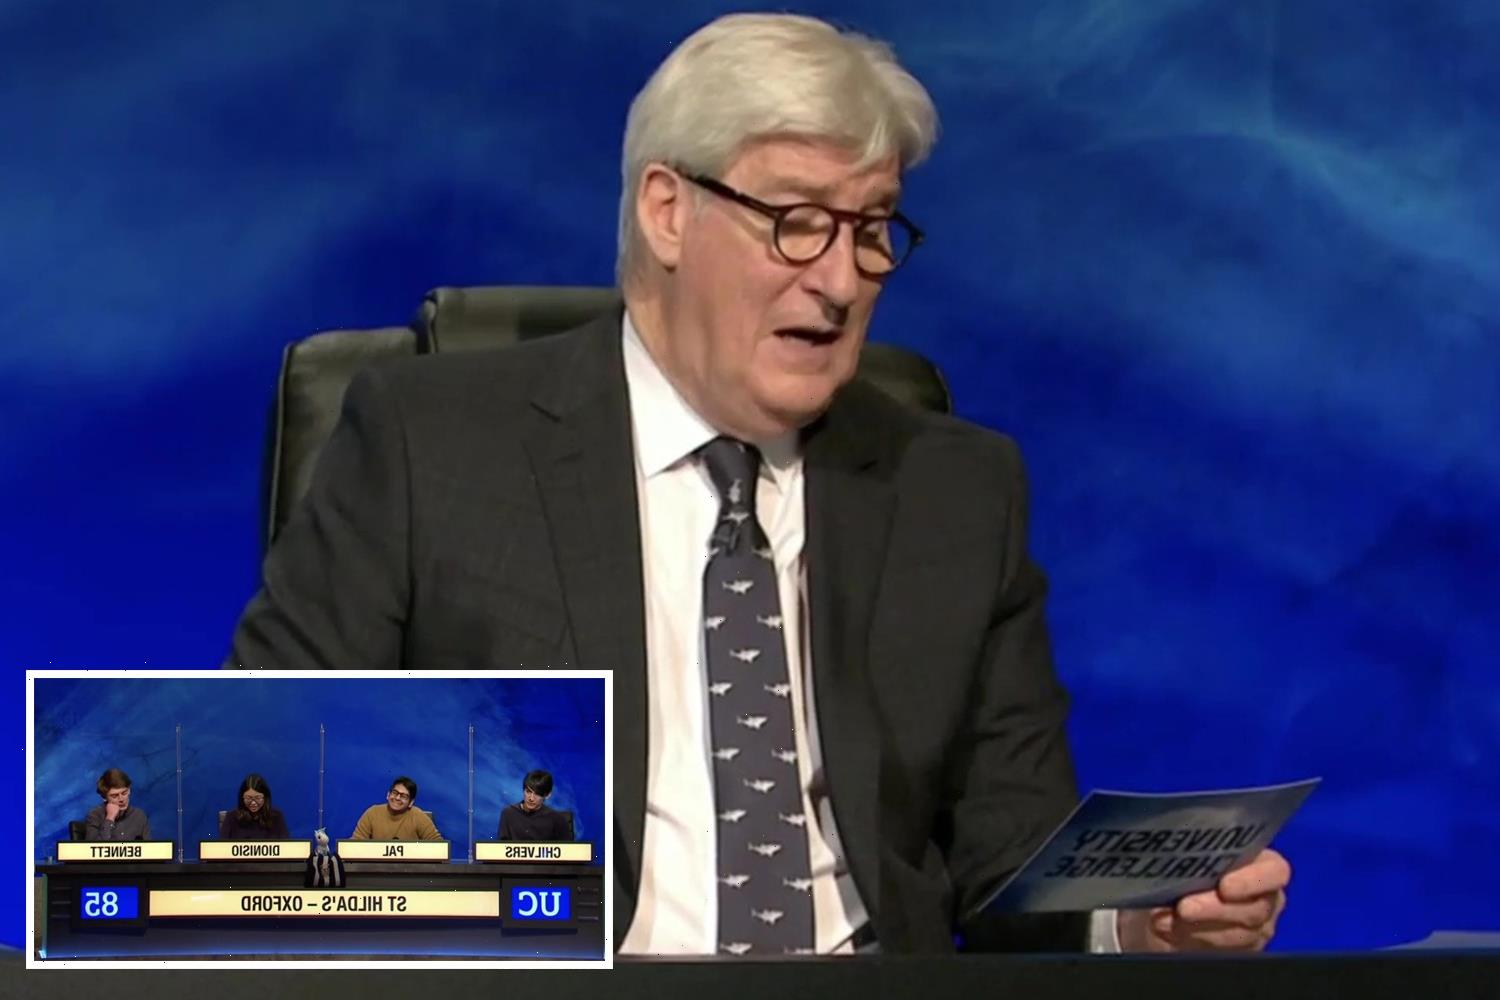 Jeremy Paxman leaves University Challenge fans FUMING as he accepts 'wrong' answer in tense maths round